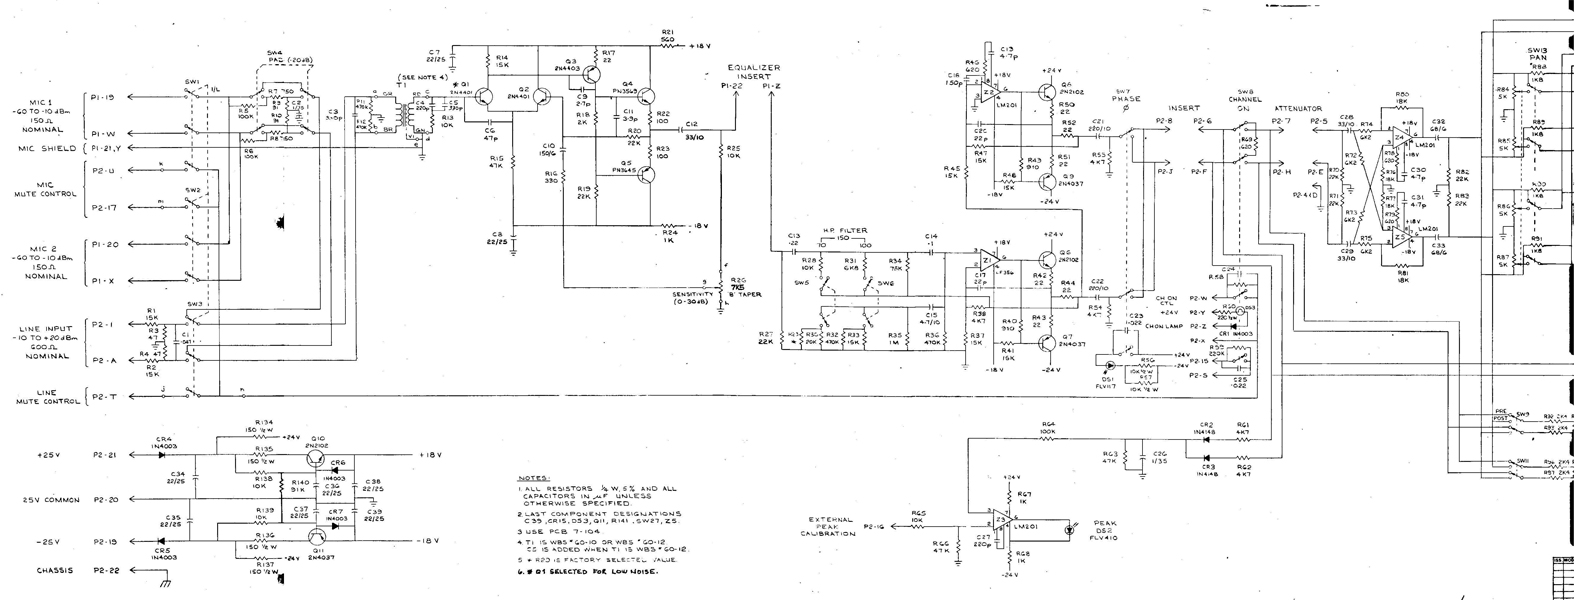 Gl1500 Headset Wiring Diagram Auto Electrical Cb Mic Cx500